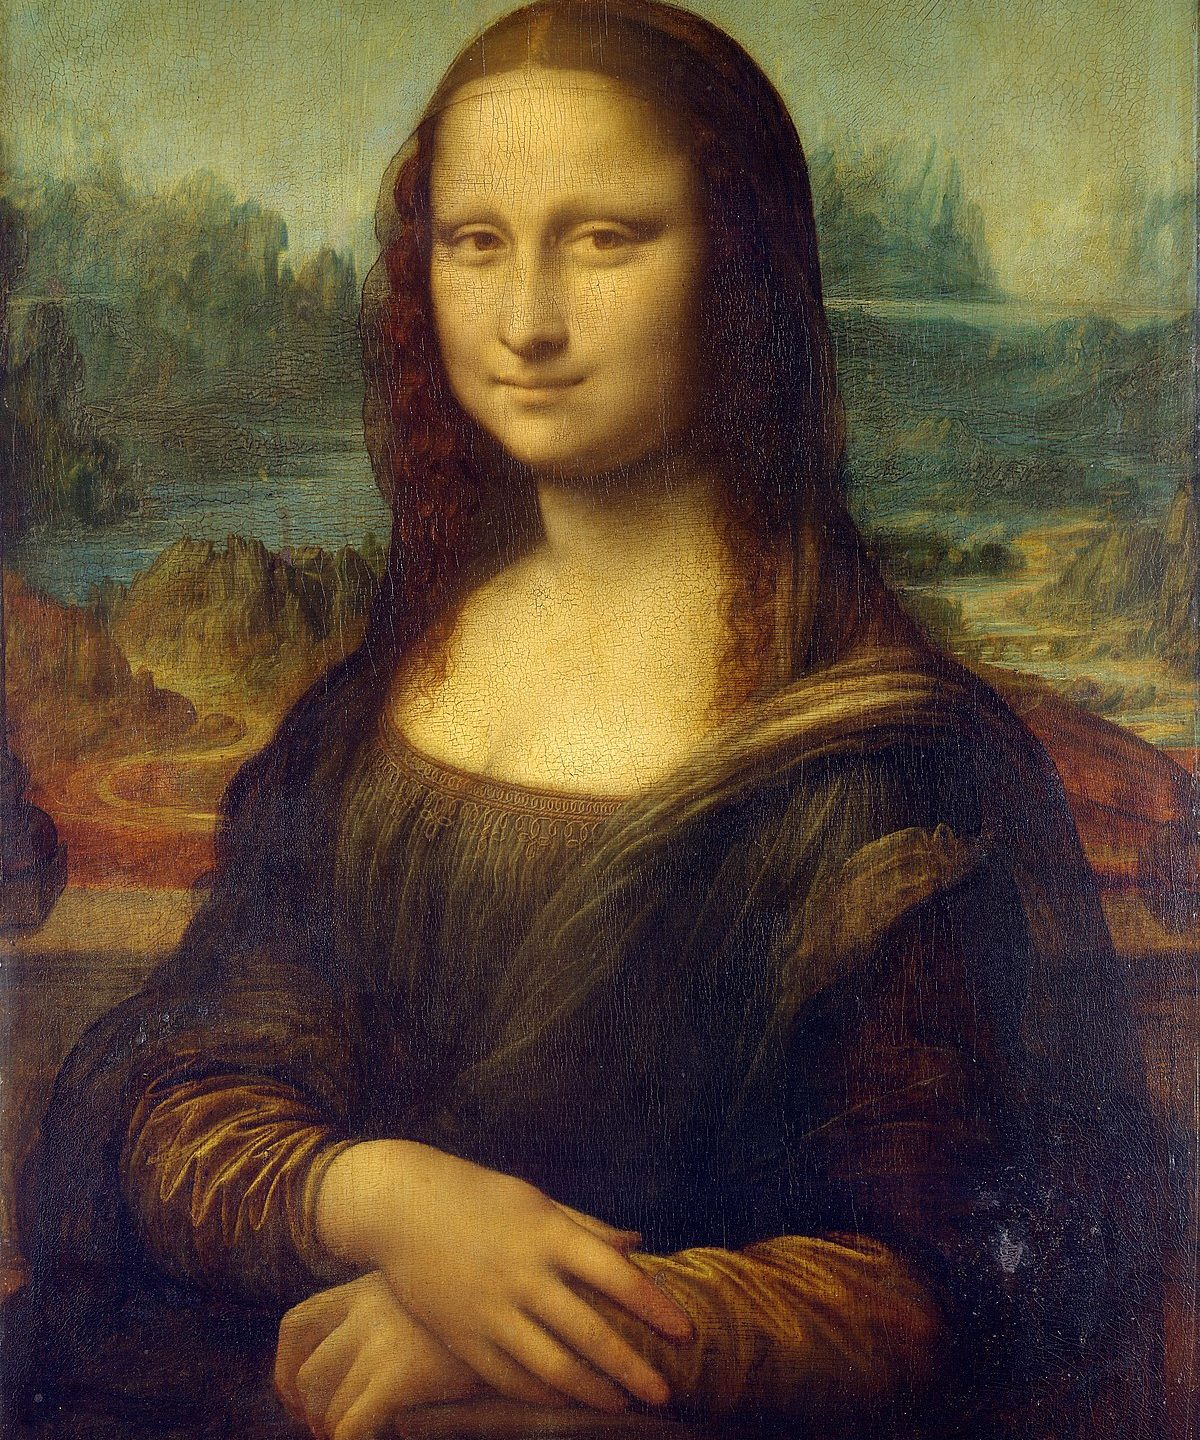 My Say: What Do You Mean 'Why Is The Mona Lisa Famous?' Because It's Famous For Being Famous For Being Famous. Idiot. Fuck You. (By Marshall McWilliamson)